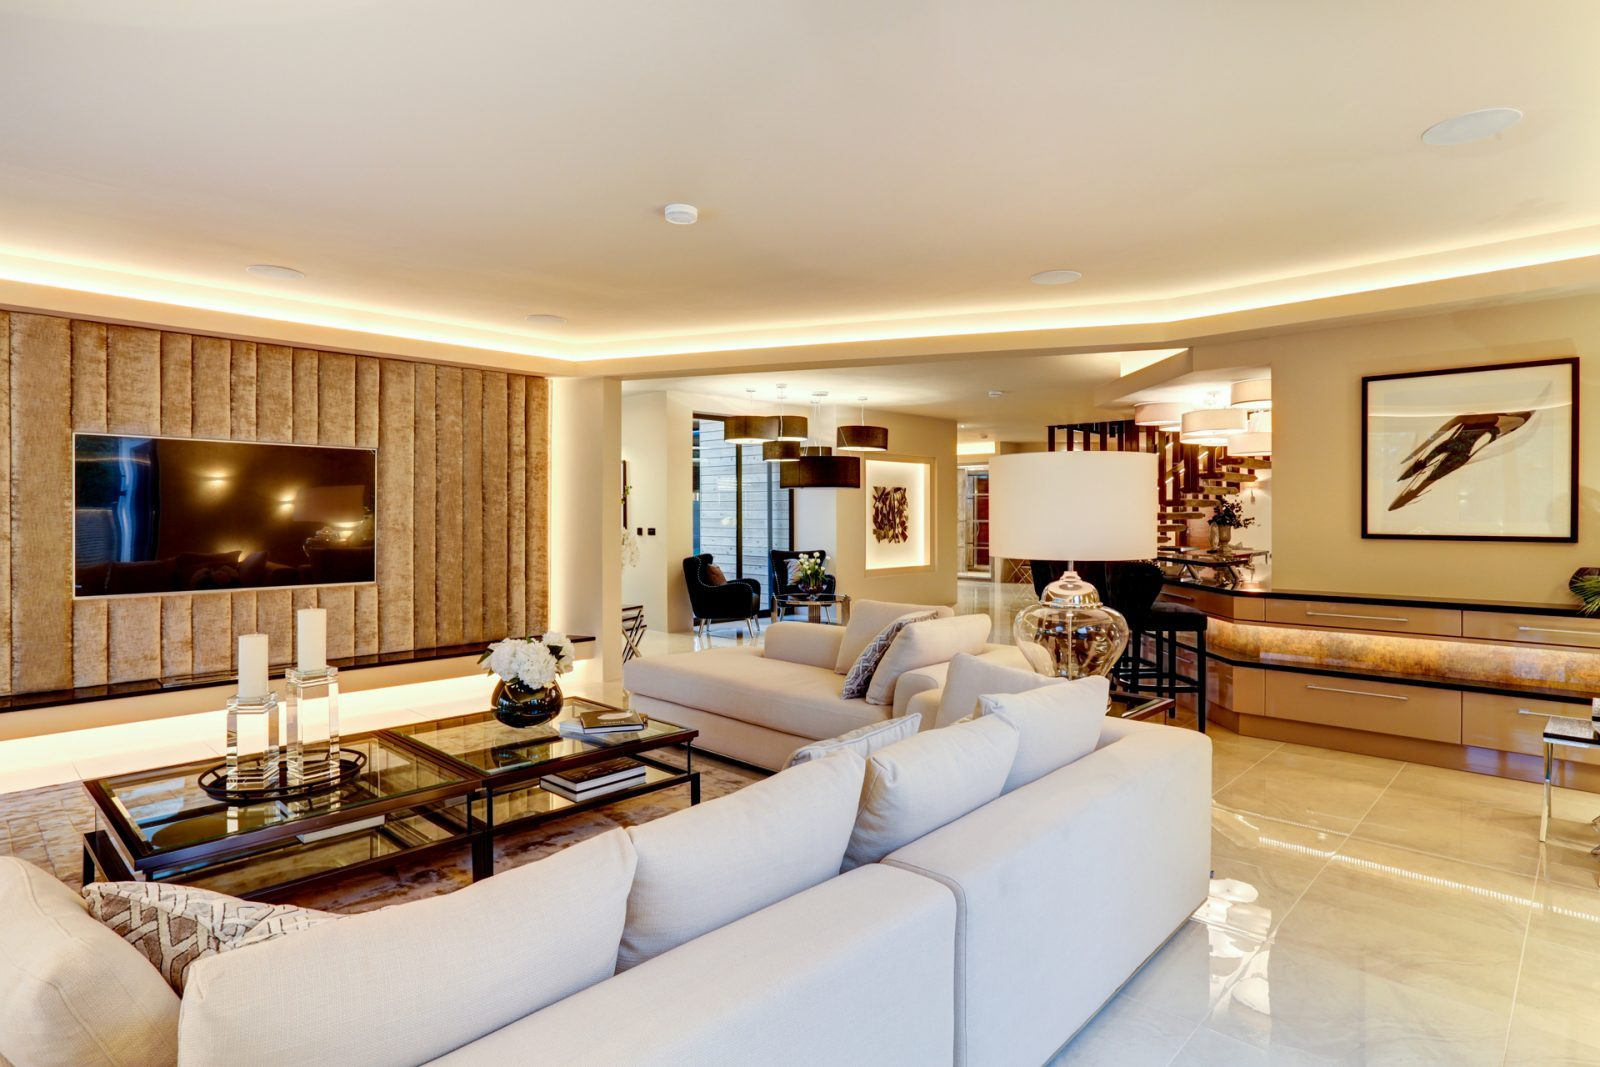 Interior design consultation guy phoenix luxury homes for Interior design consultation